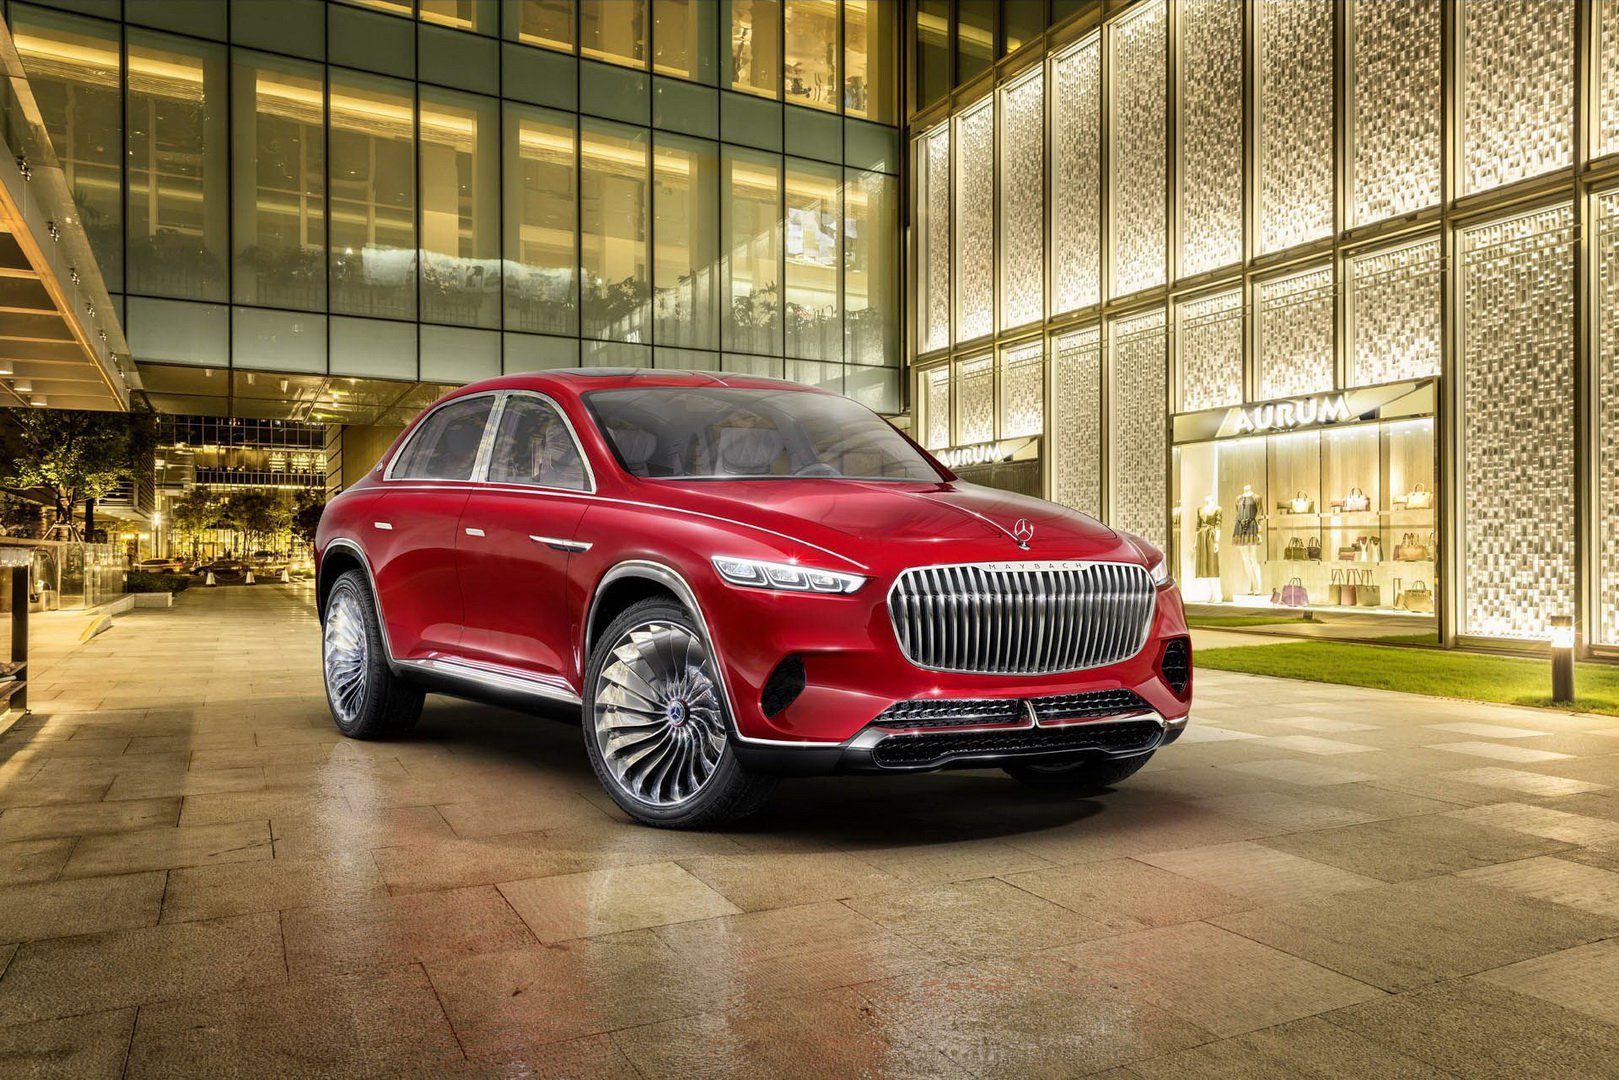 2018-mercedes-maybach-ultimate-luxury-concept-1.jpg